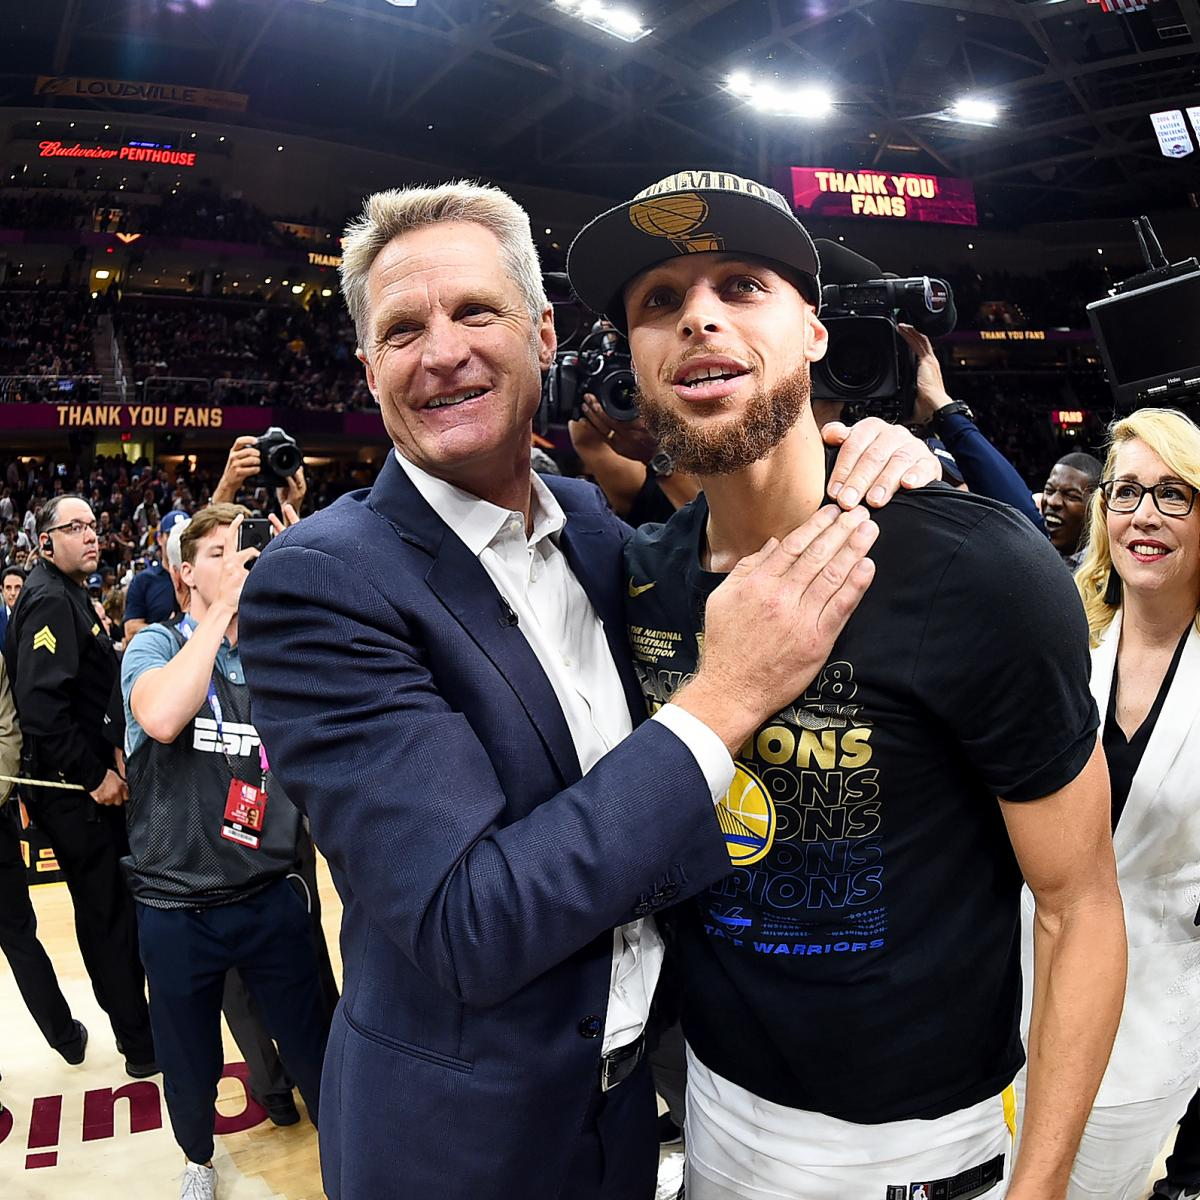 Warriors Parade 2018: Route, Date, Schedule, TV Info and More